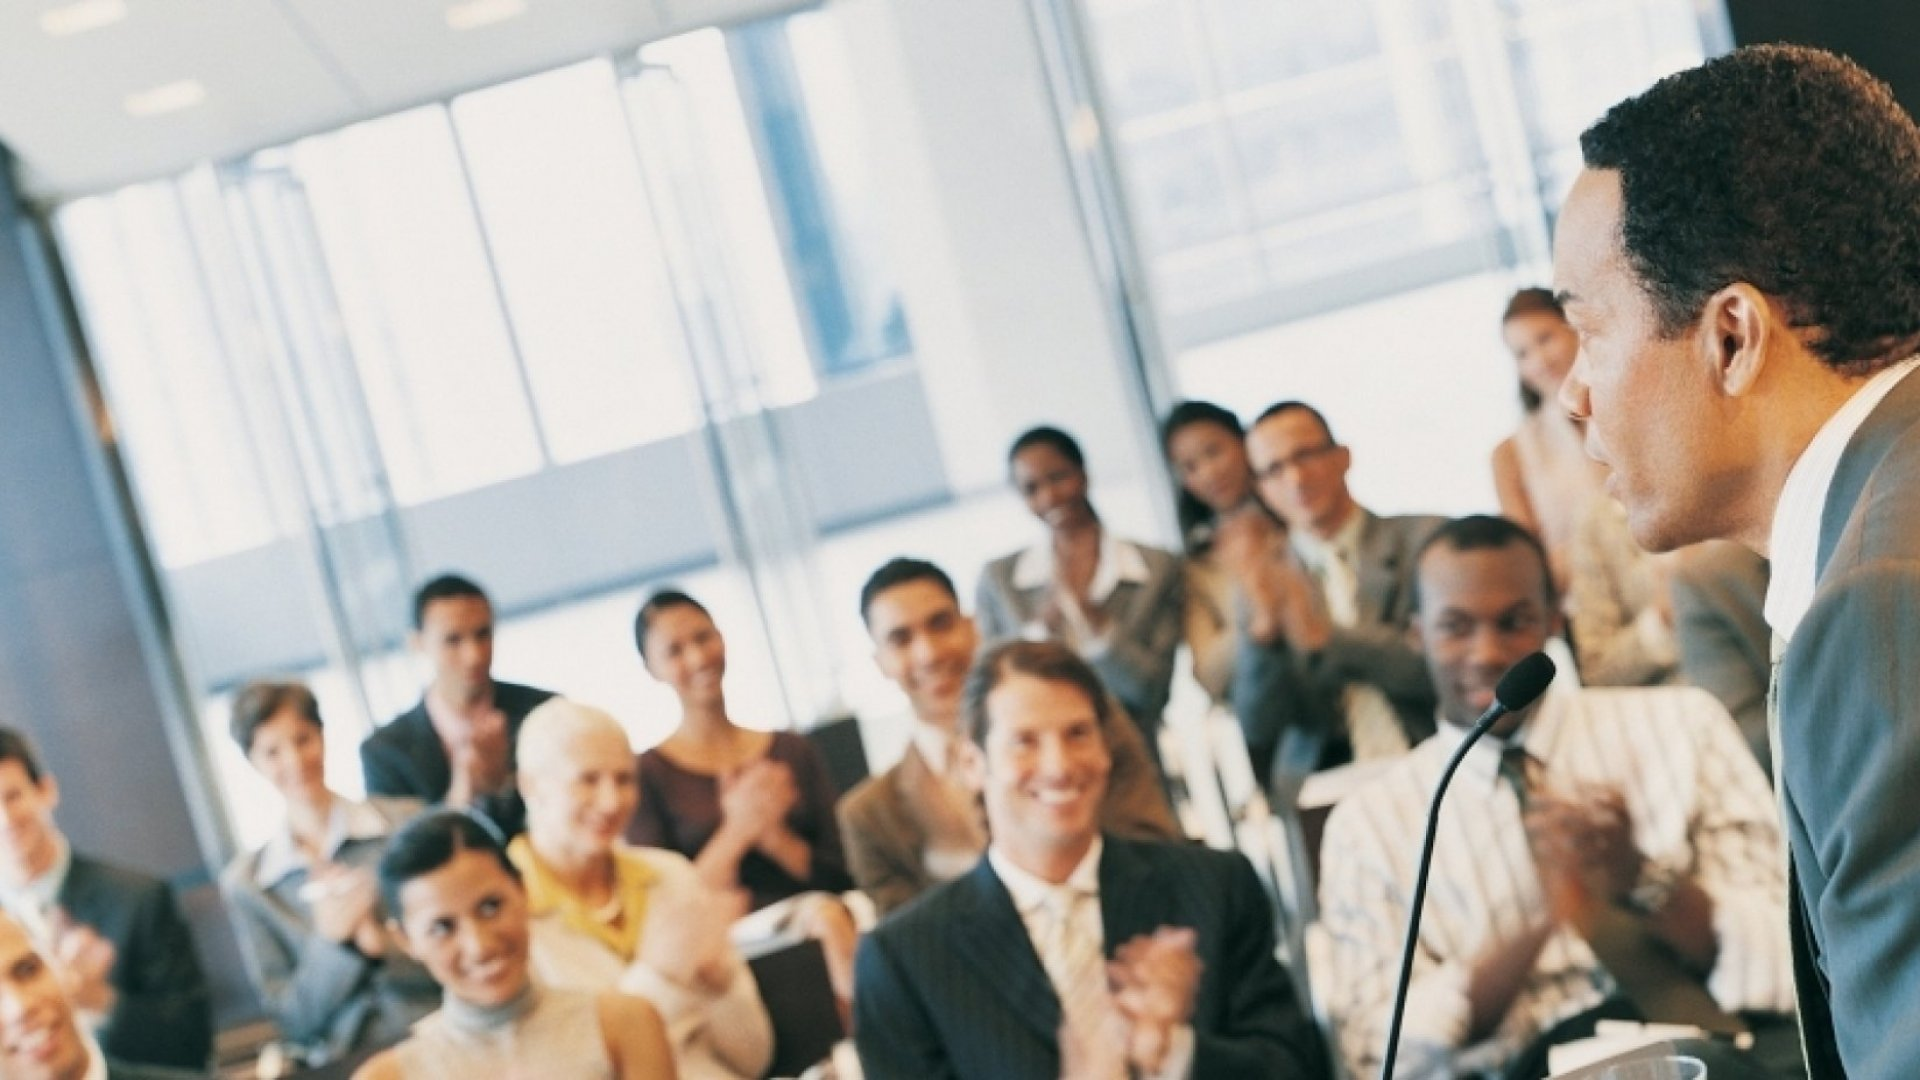 Are You Building an Executive Legacy? Answer These 4 Questions